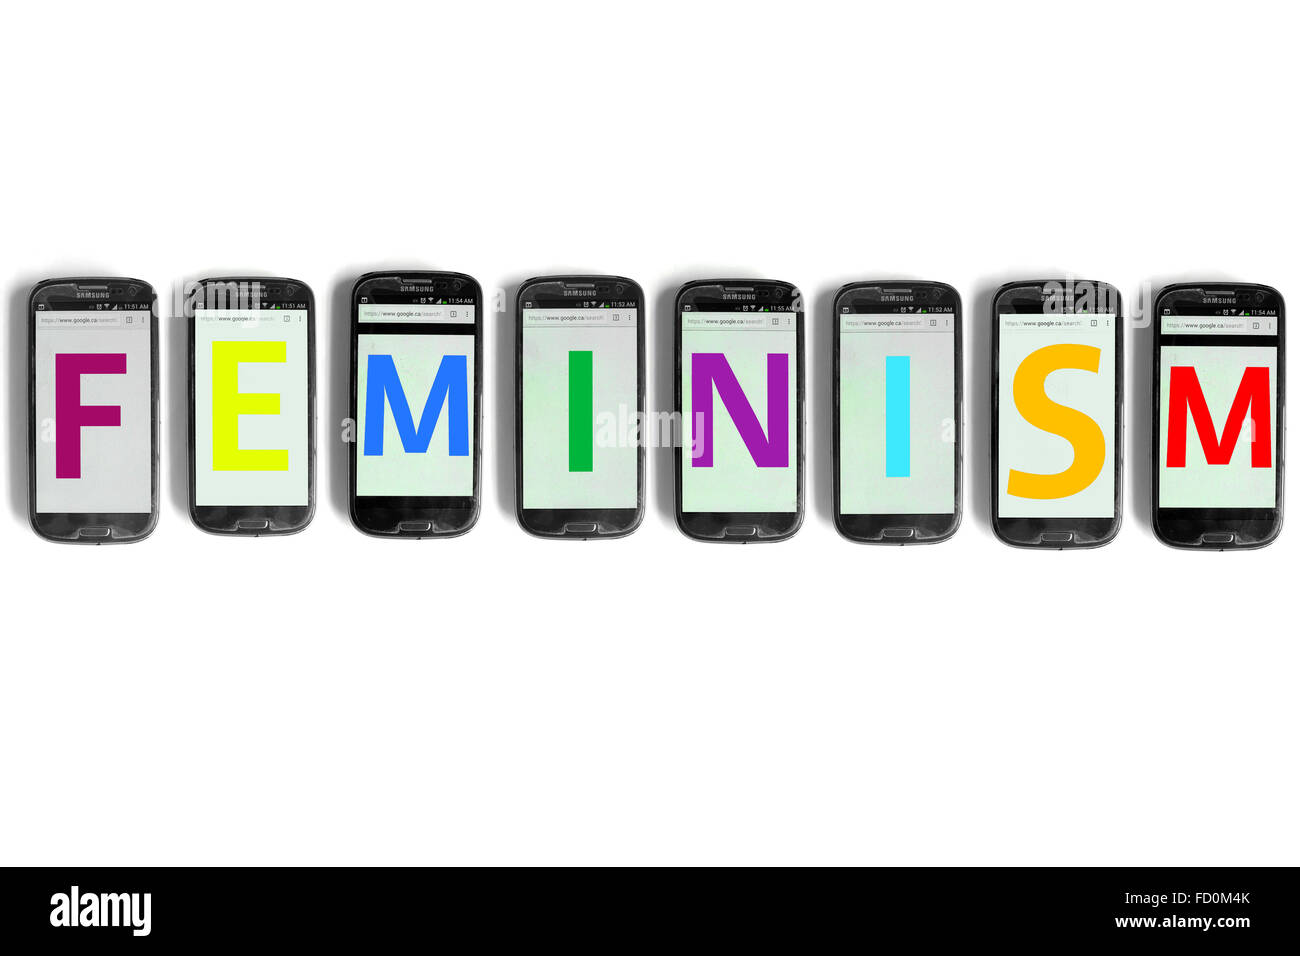 Feminism on the screens of smartphones photographed against a white background. - Stock Image